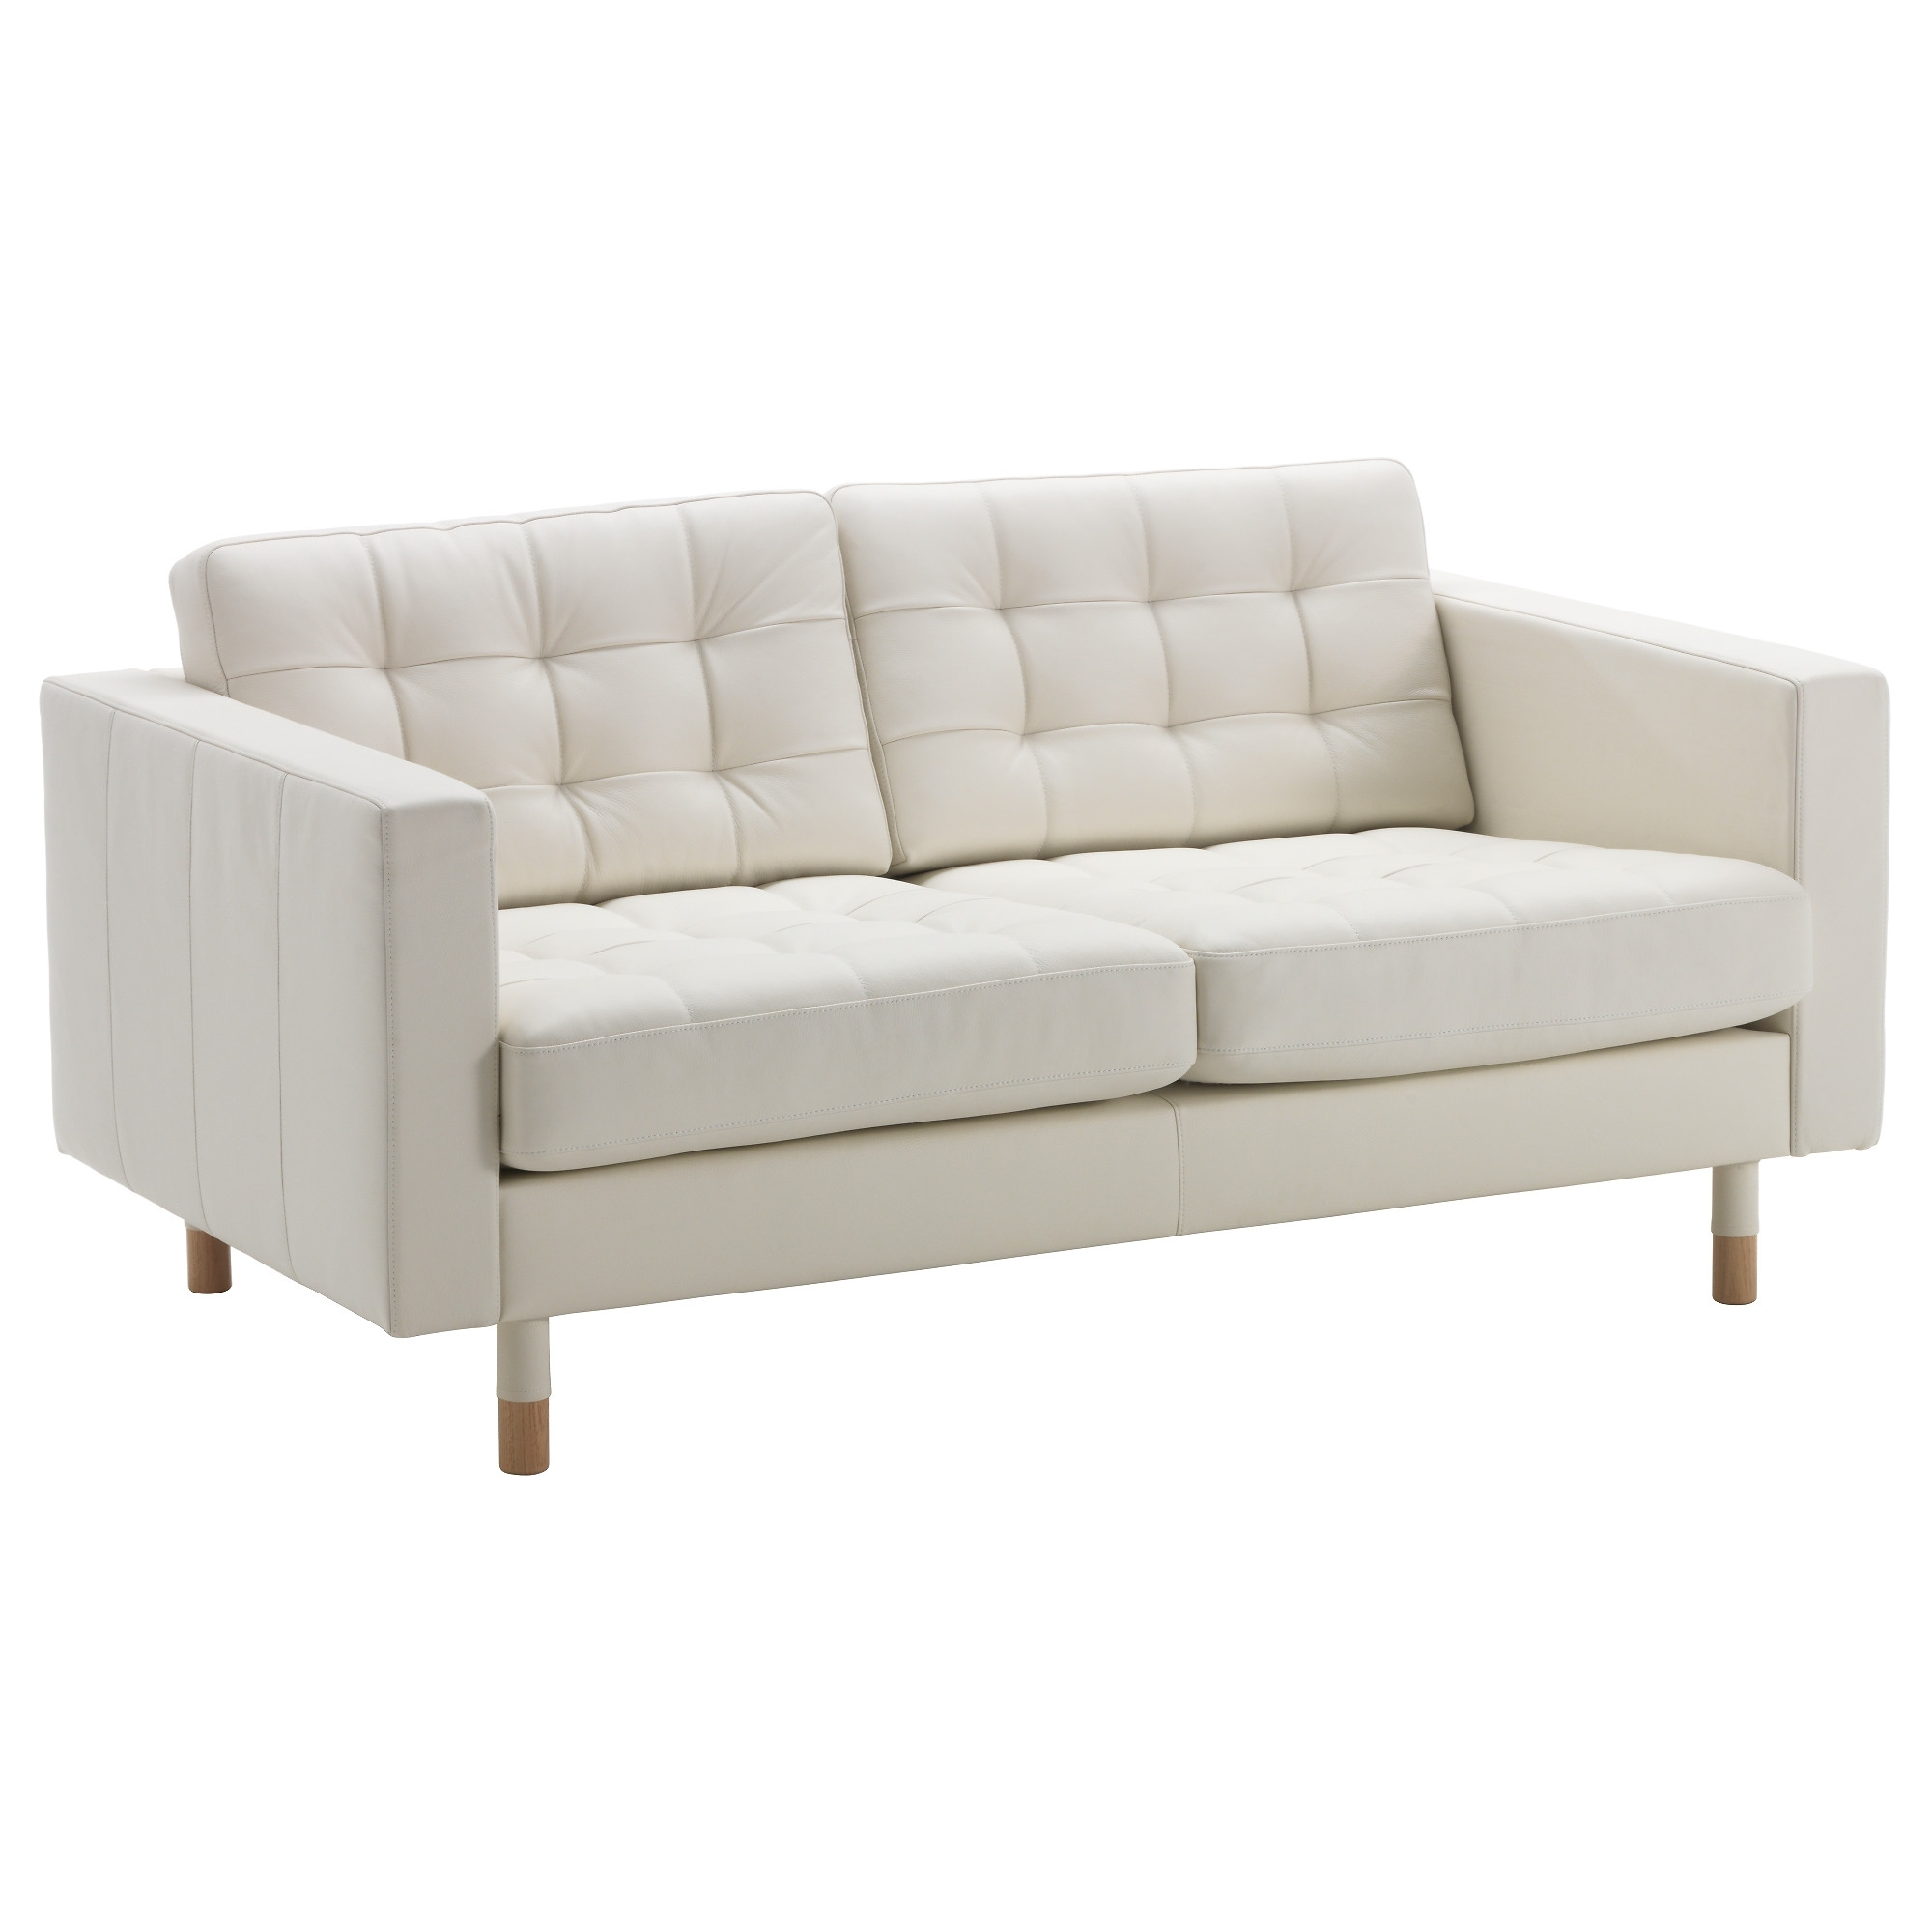 Ikea Small Sofas With Well Known Landskrona Loveseat – Grann/bomstad White, Wood – Ikea (View 10 of 15)